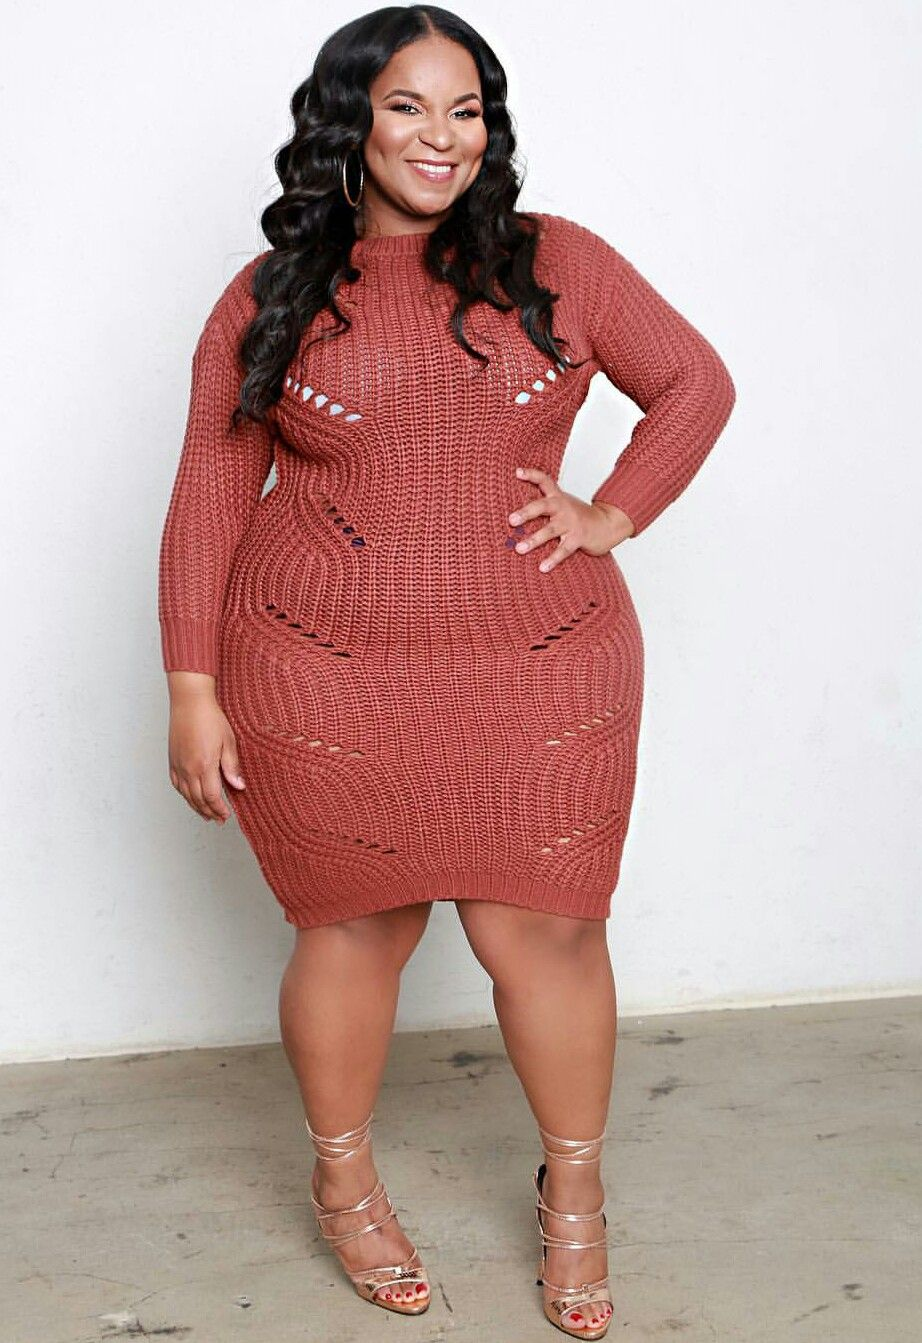 99c65787010a Big Beautiful Black Girls — IG See what is new in.